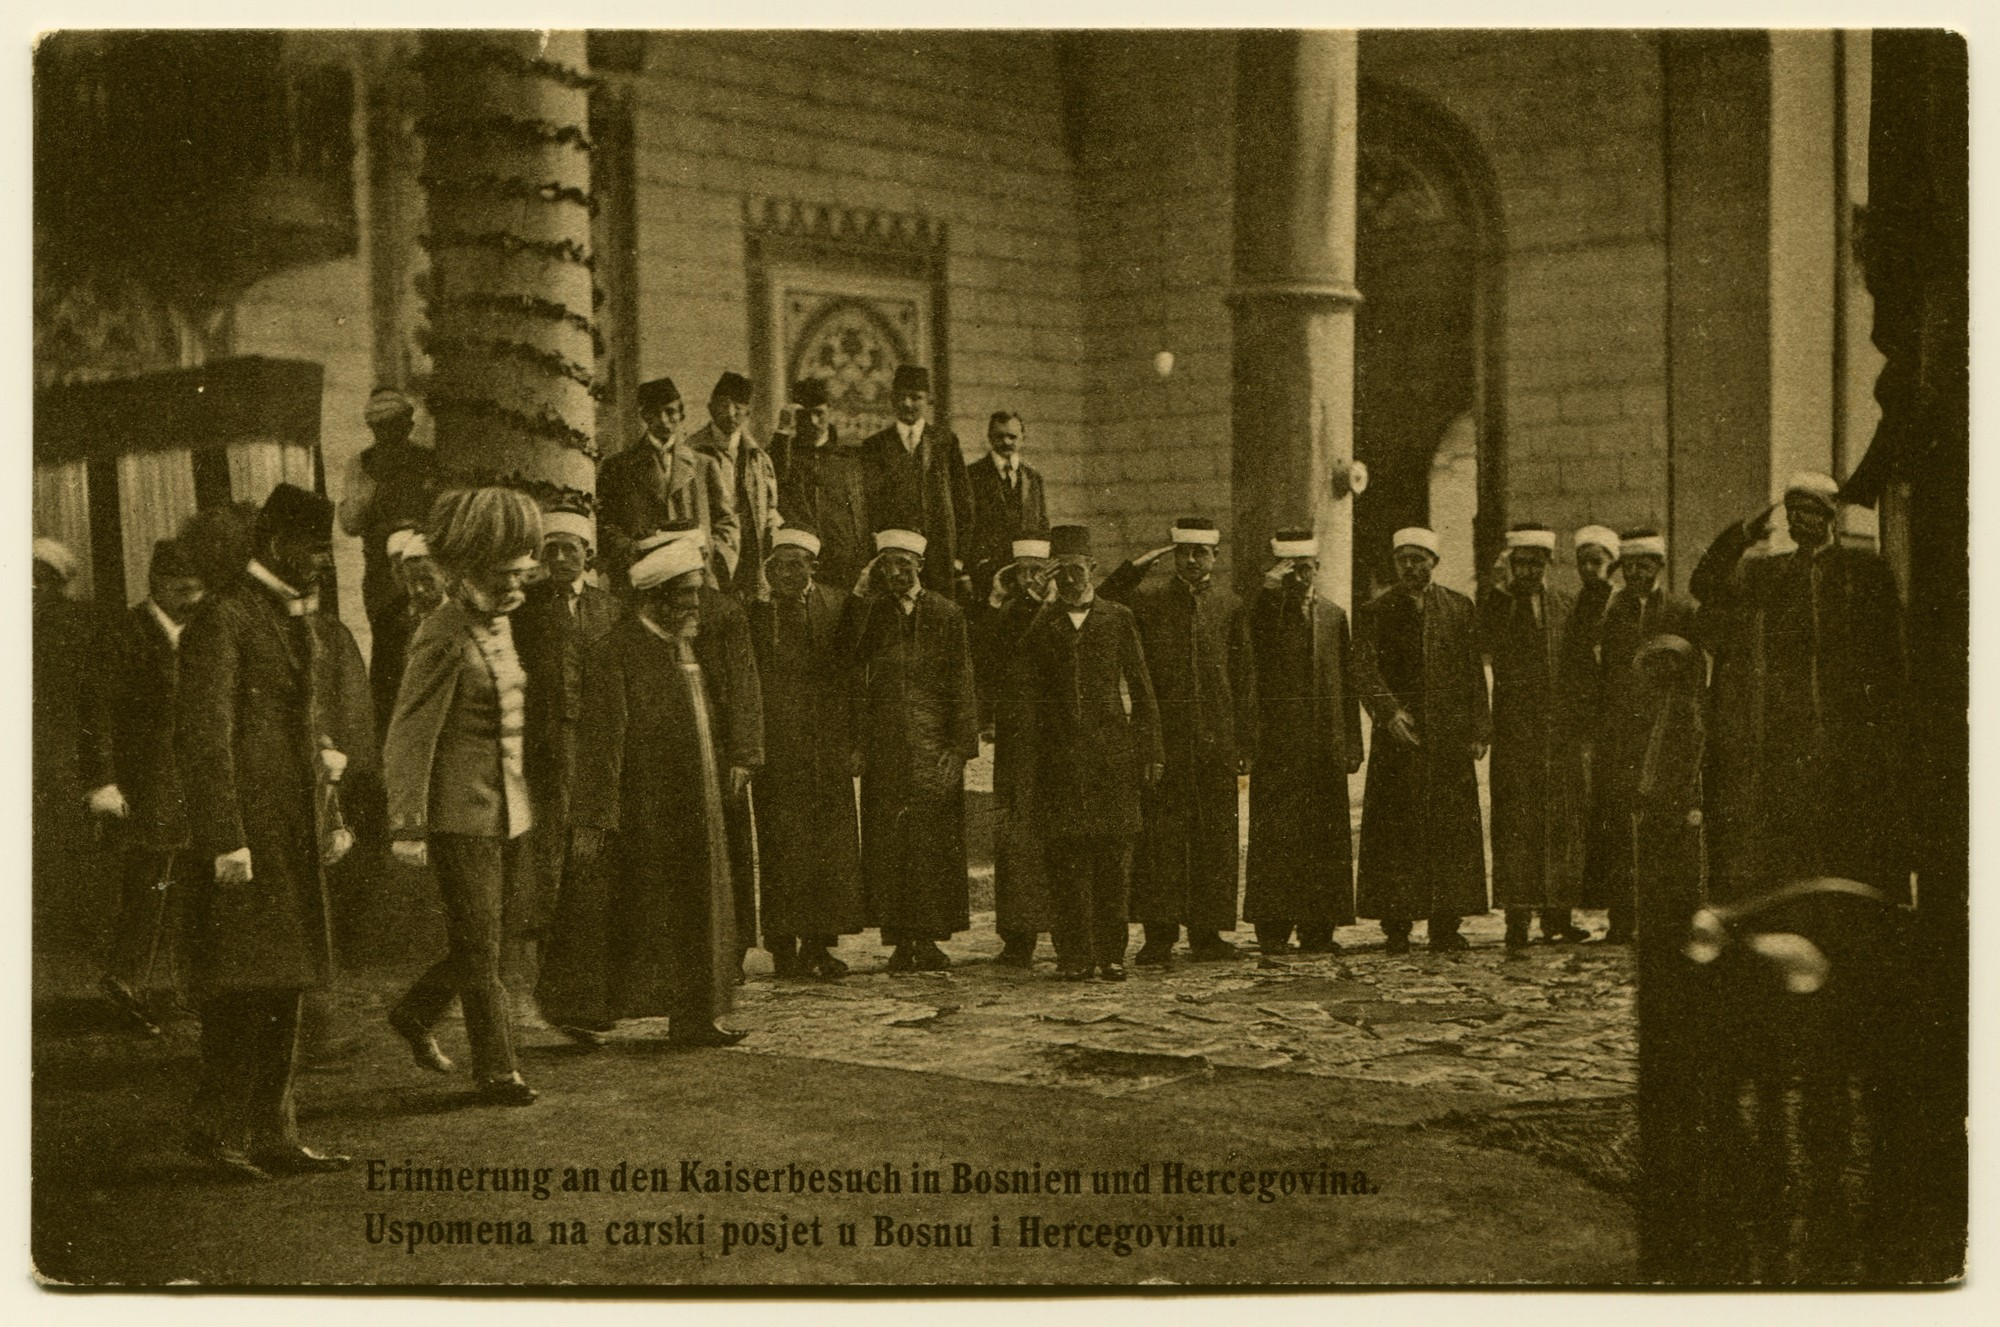 """In Memory Of Emperor Francis Joseph I Visiting Bosnia And Herzegovina"", © Bosniac Institute - Adil Zulfikarpašić Foundation"